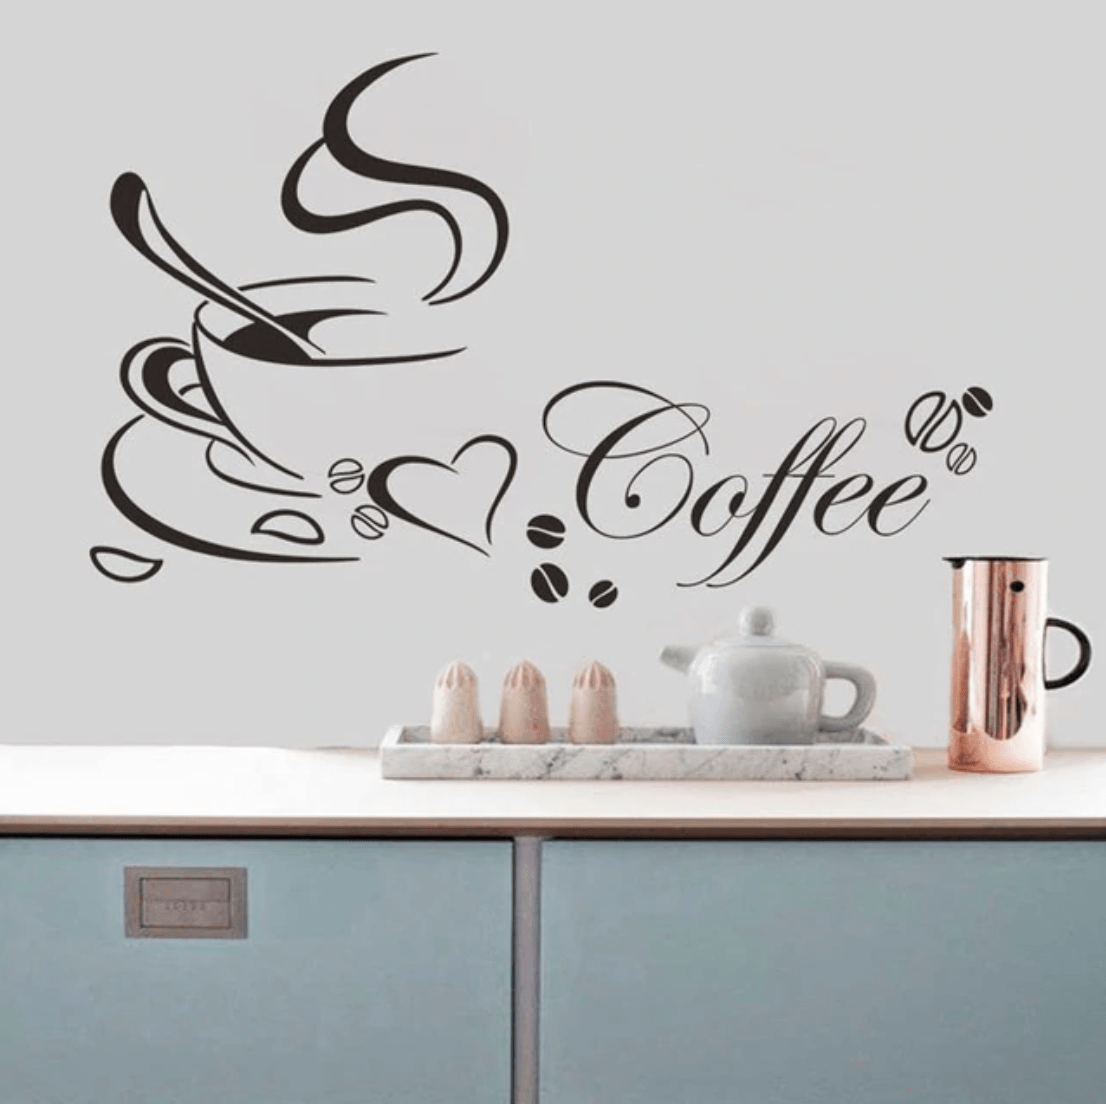 Coffee Wall Sticker  Kitchen wall stickers, Wall stickers home